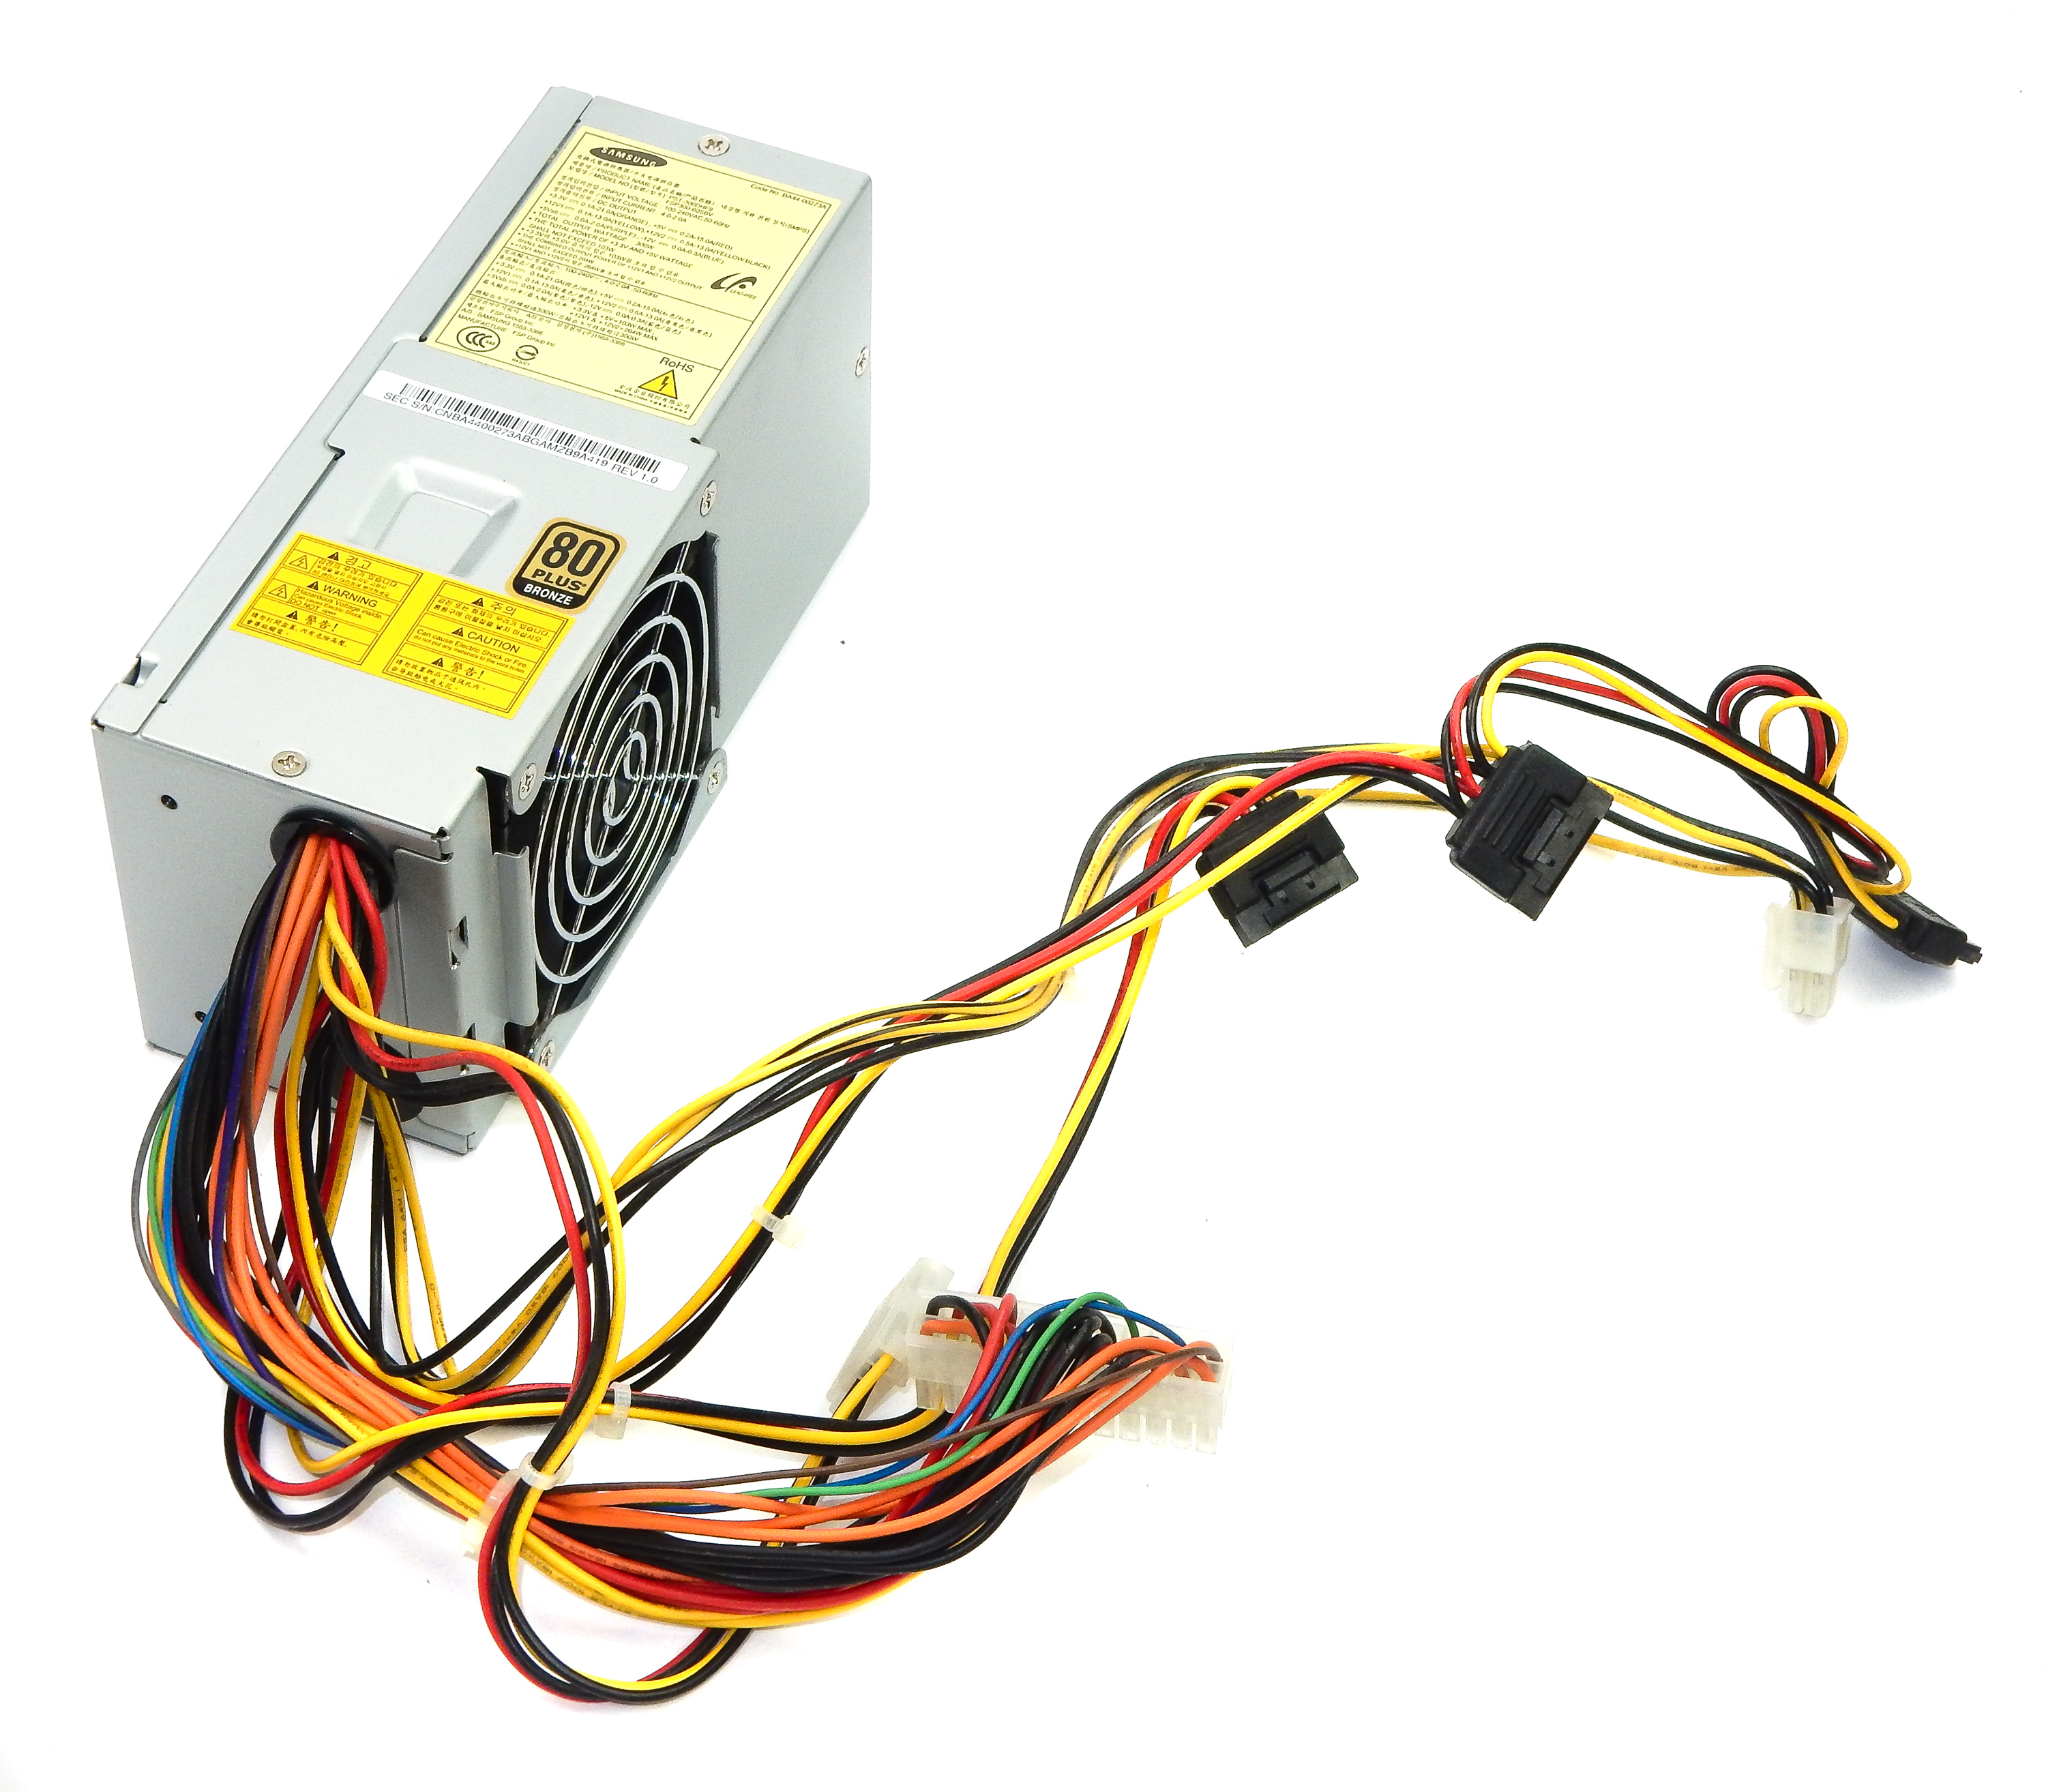 Samsung BA44-00273A FSP300-60SBV 300W Power Supply For Magic Station PC